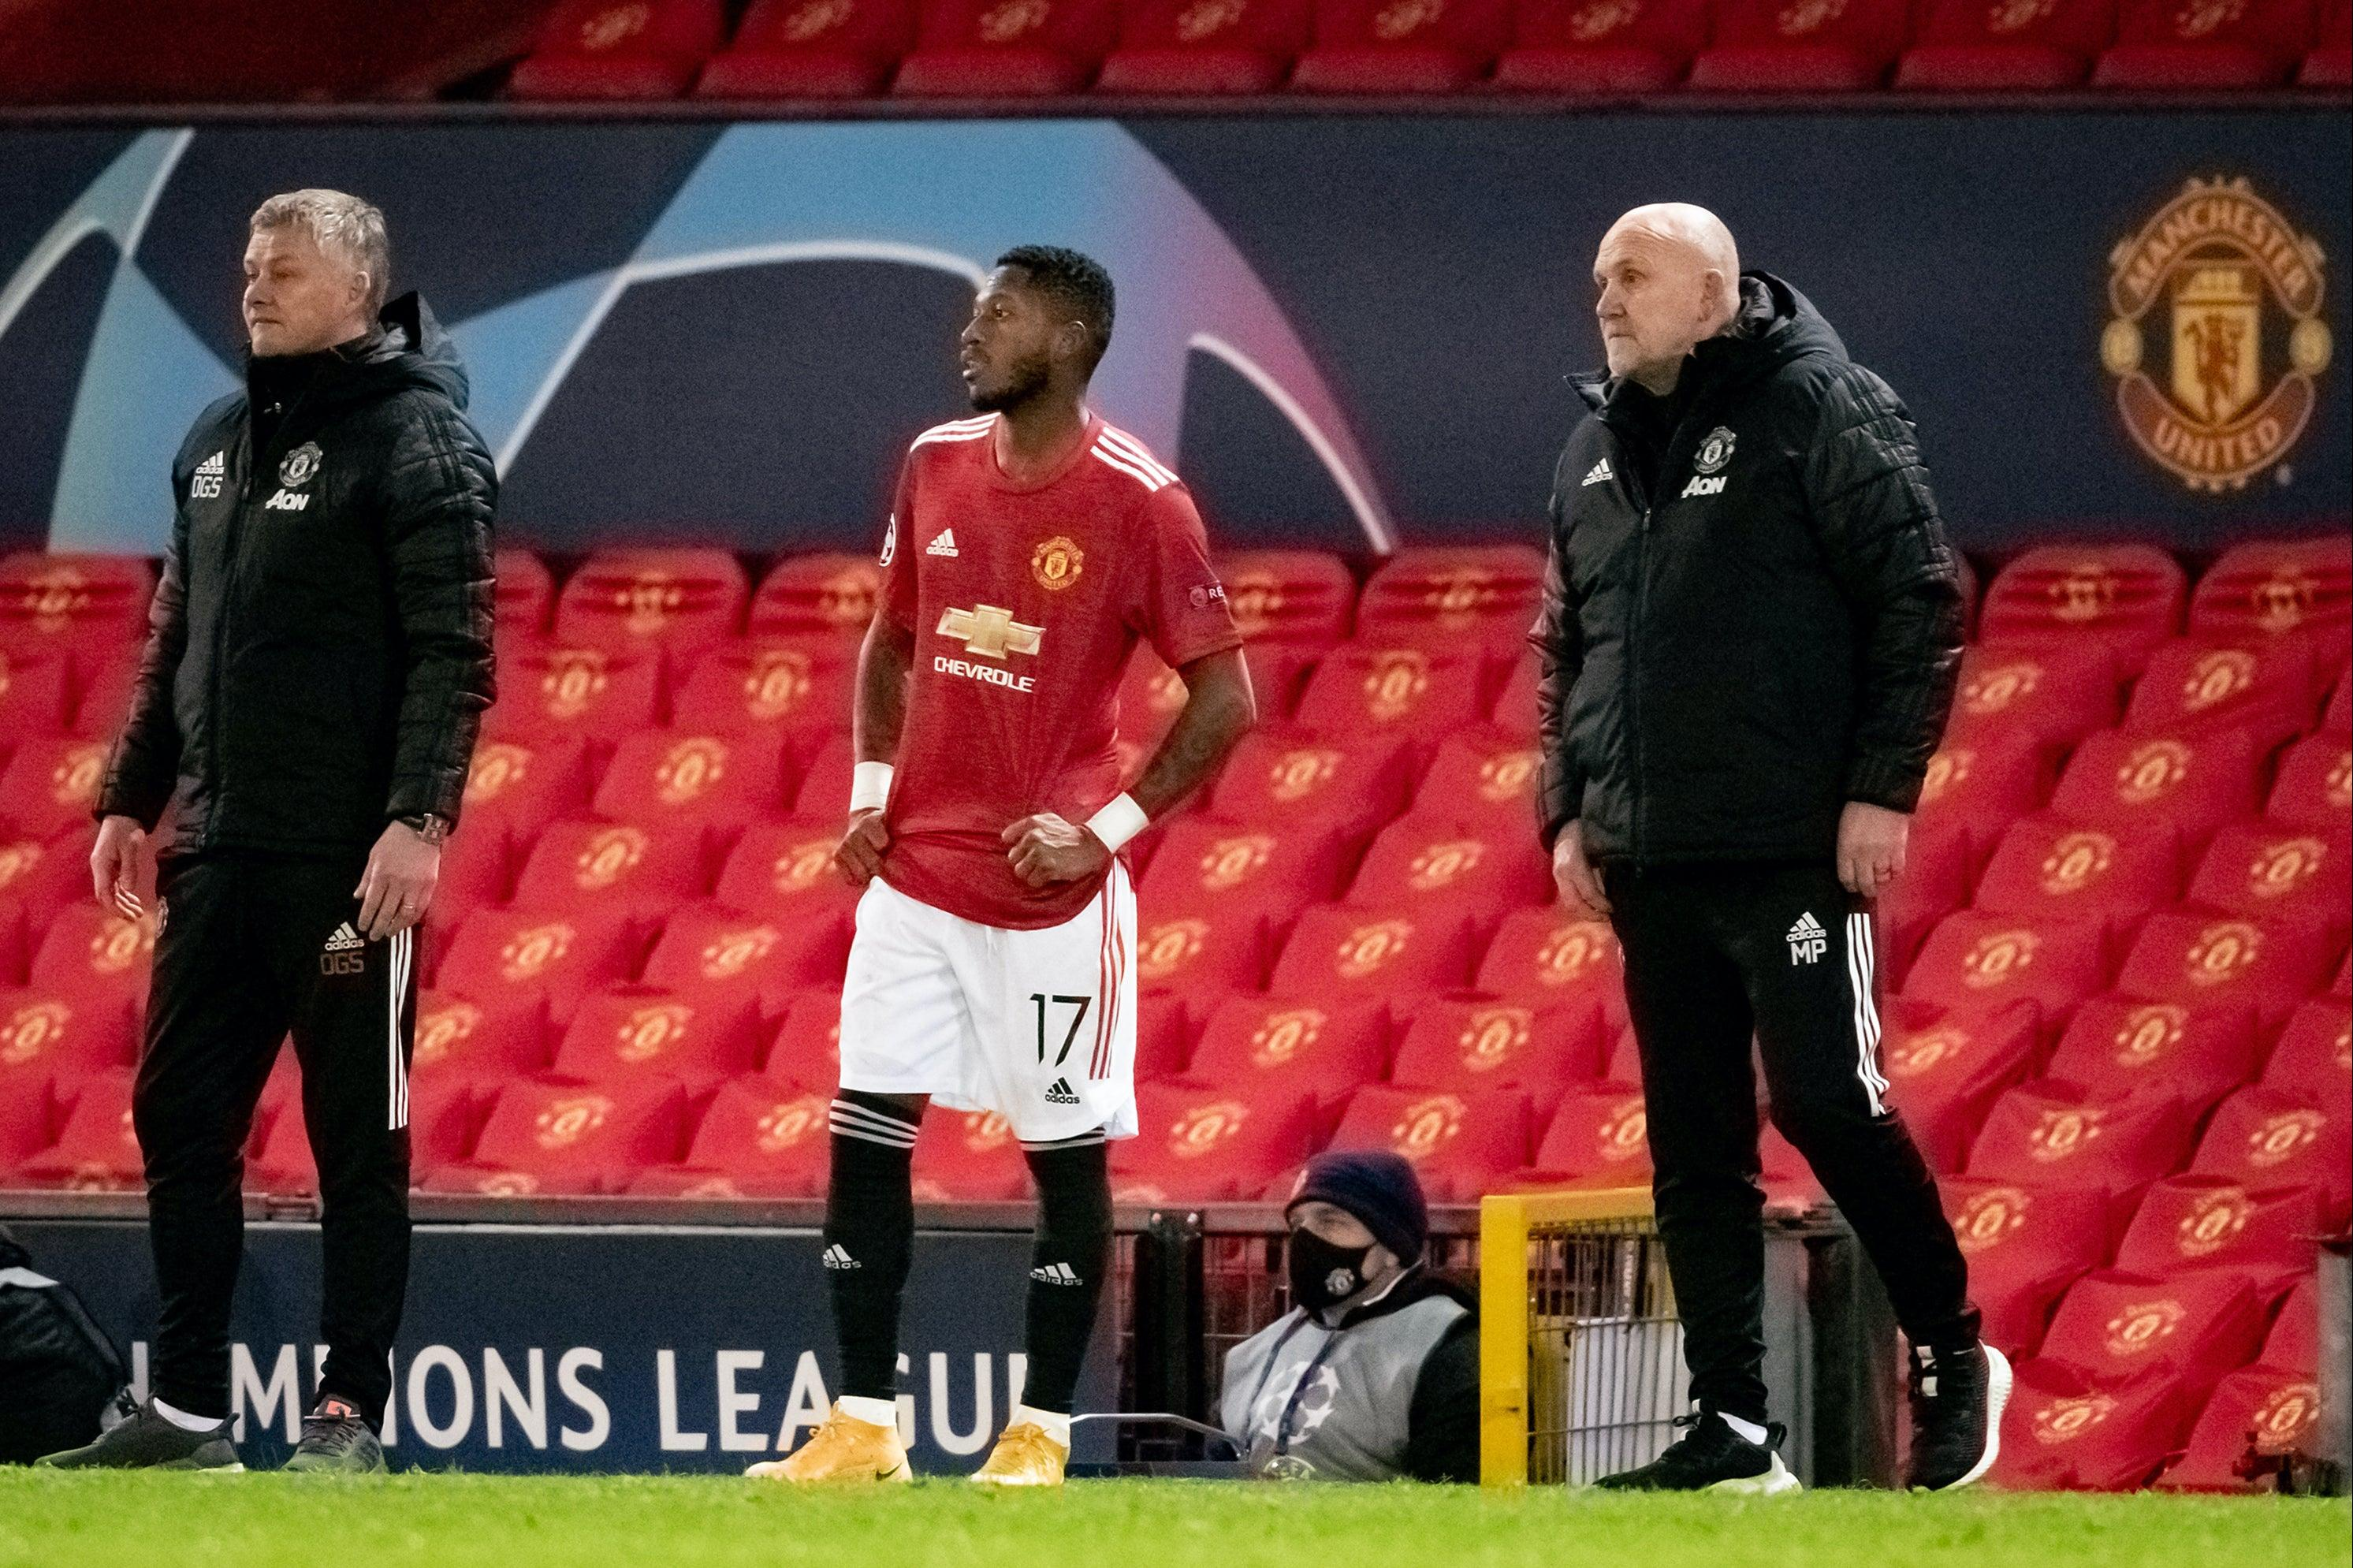 Ole Gunnar Solskjaer defends decision not to substitute Fred before red card in PSG defeat